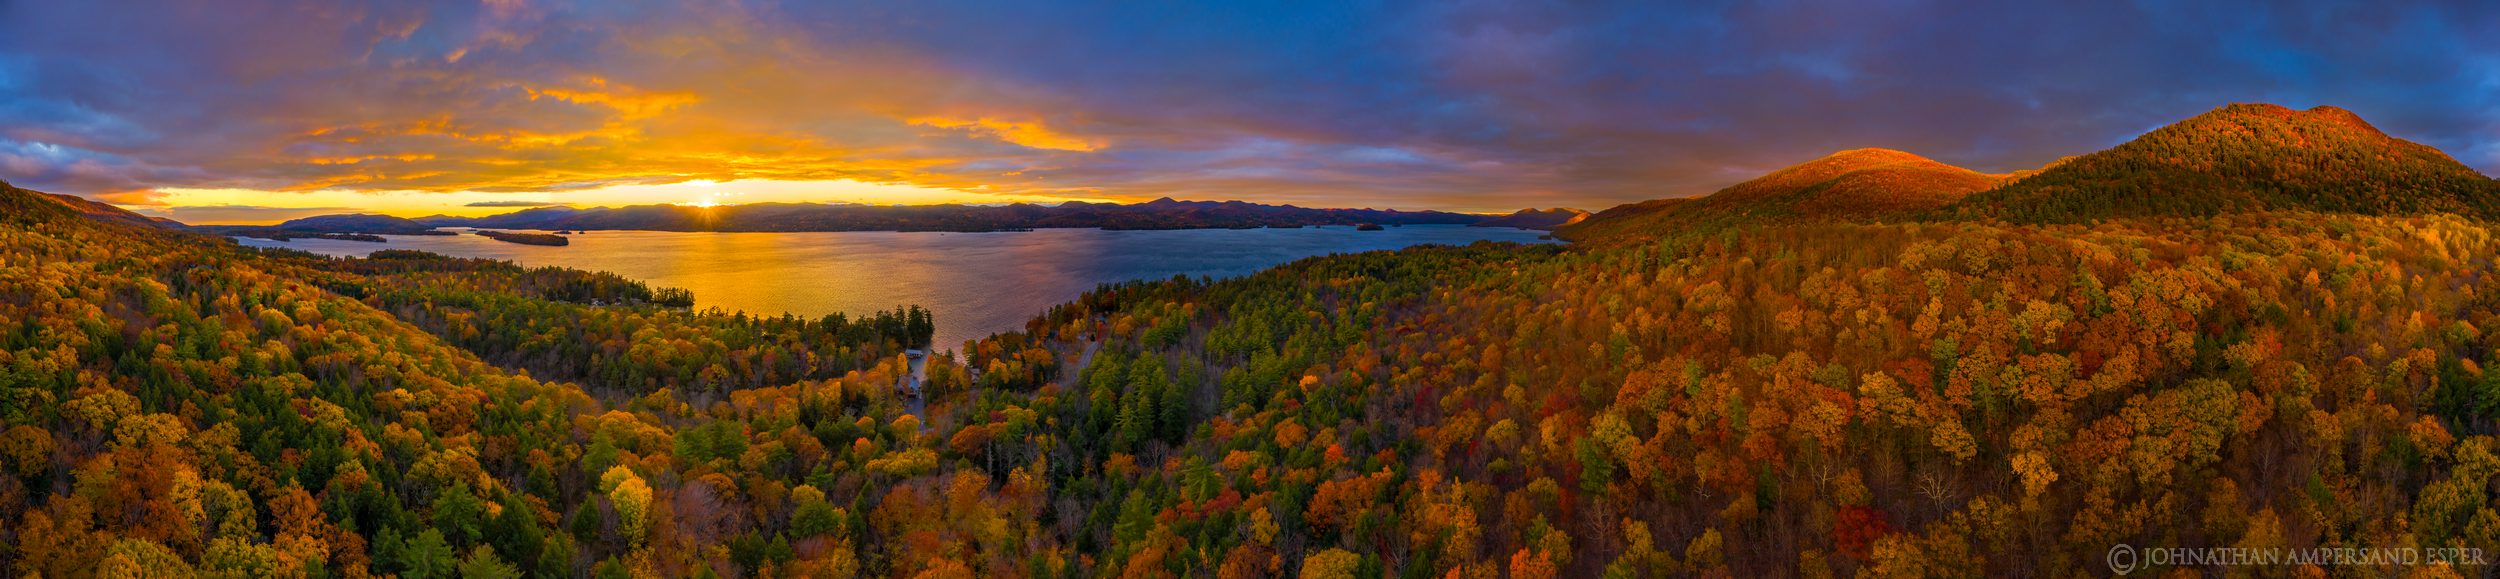 Stewarts Ledge overlook Lake George 360 degree drone panorama, comprised of 105 source files.